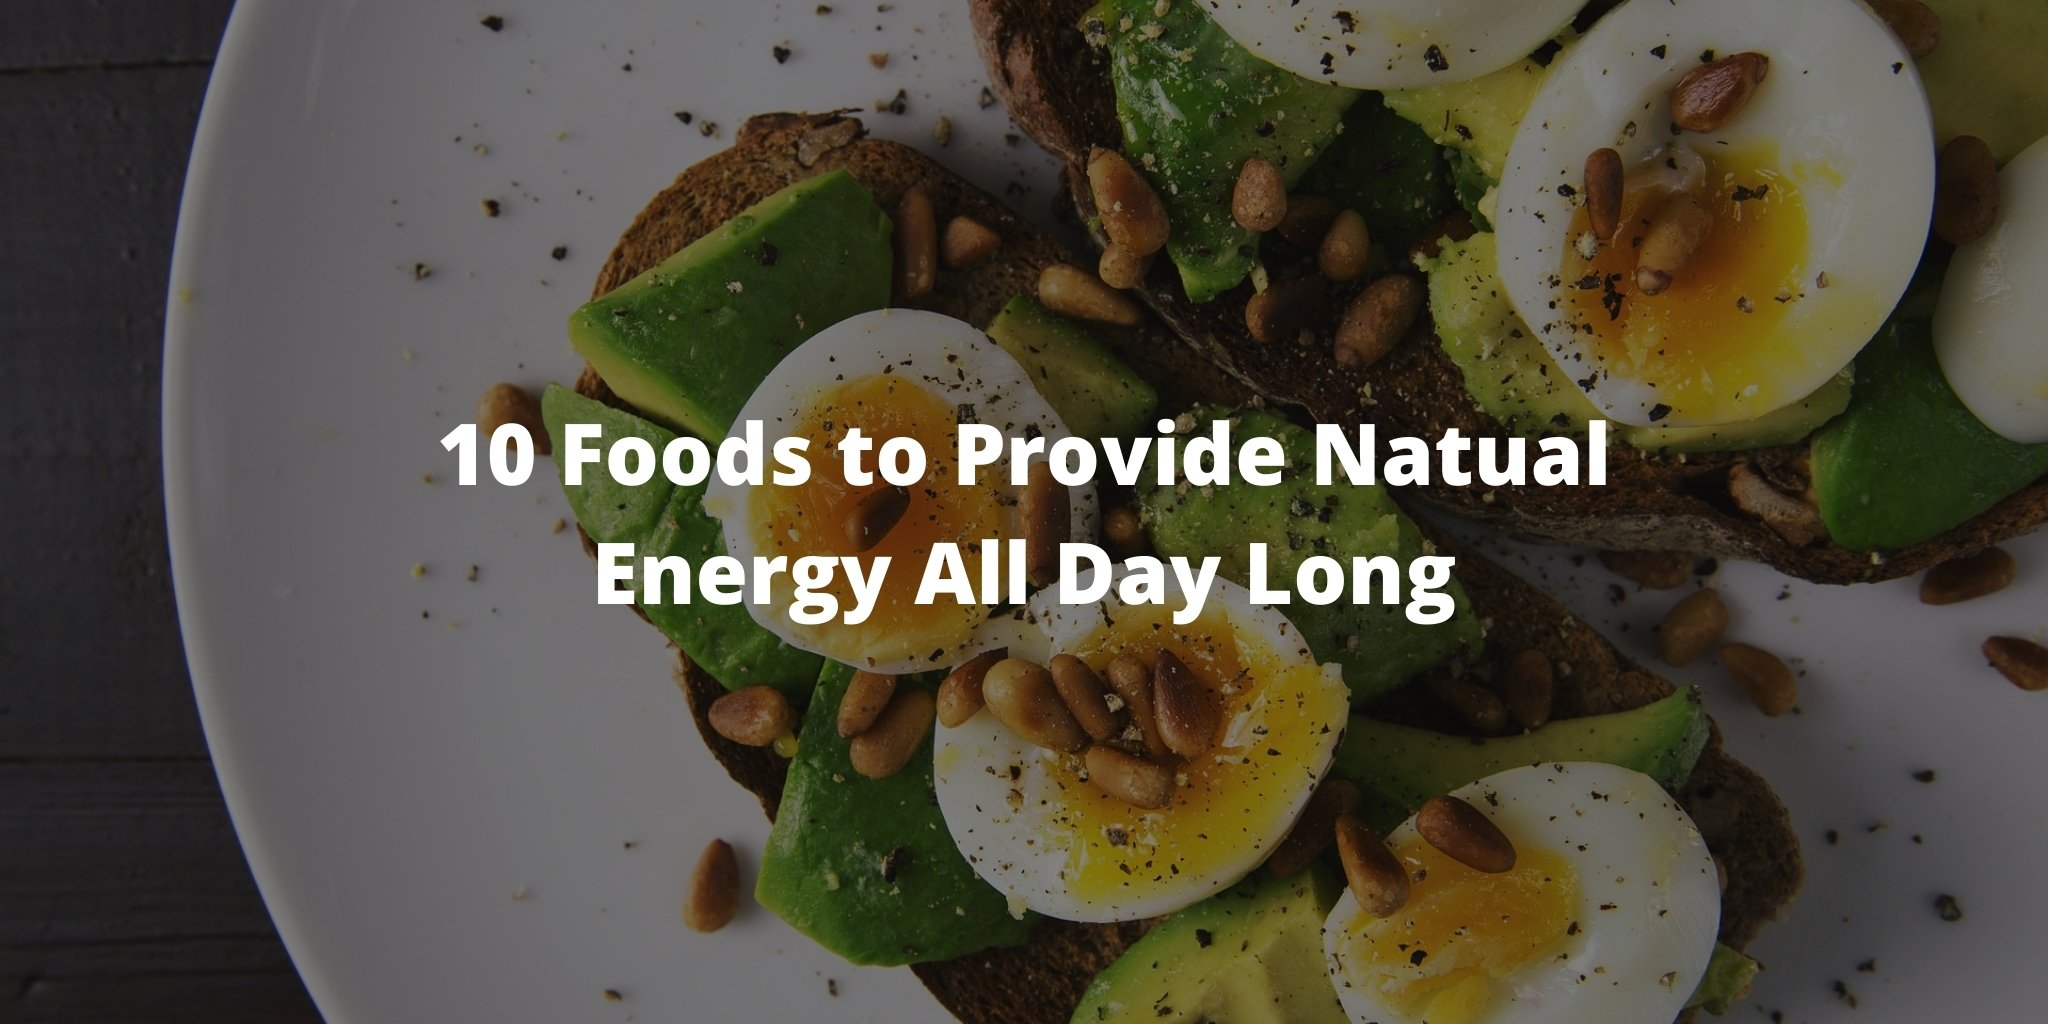 10 Foods to Provide Natual Energy All Day Long